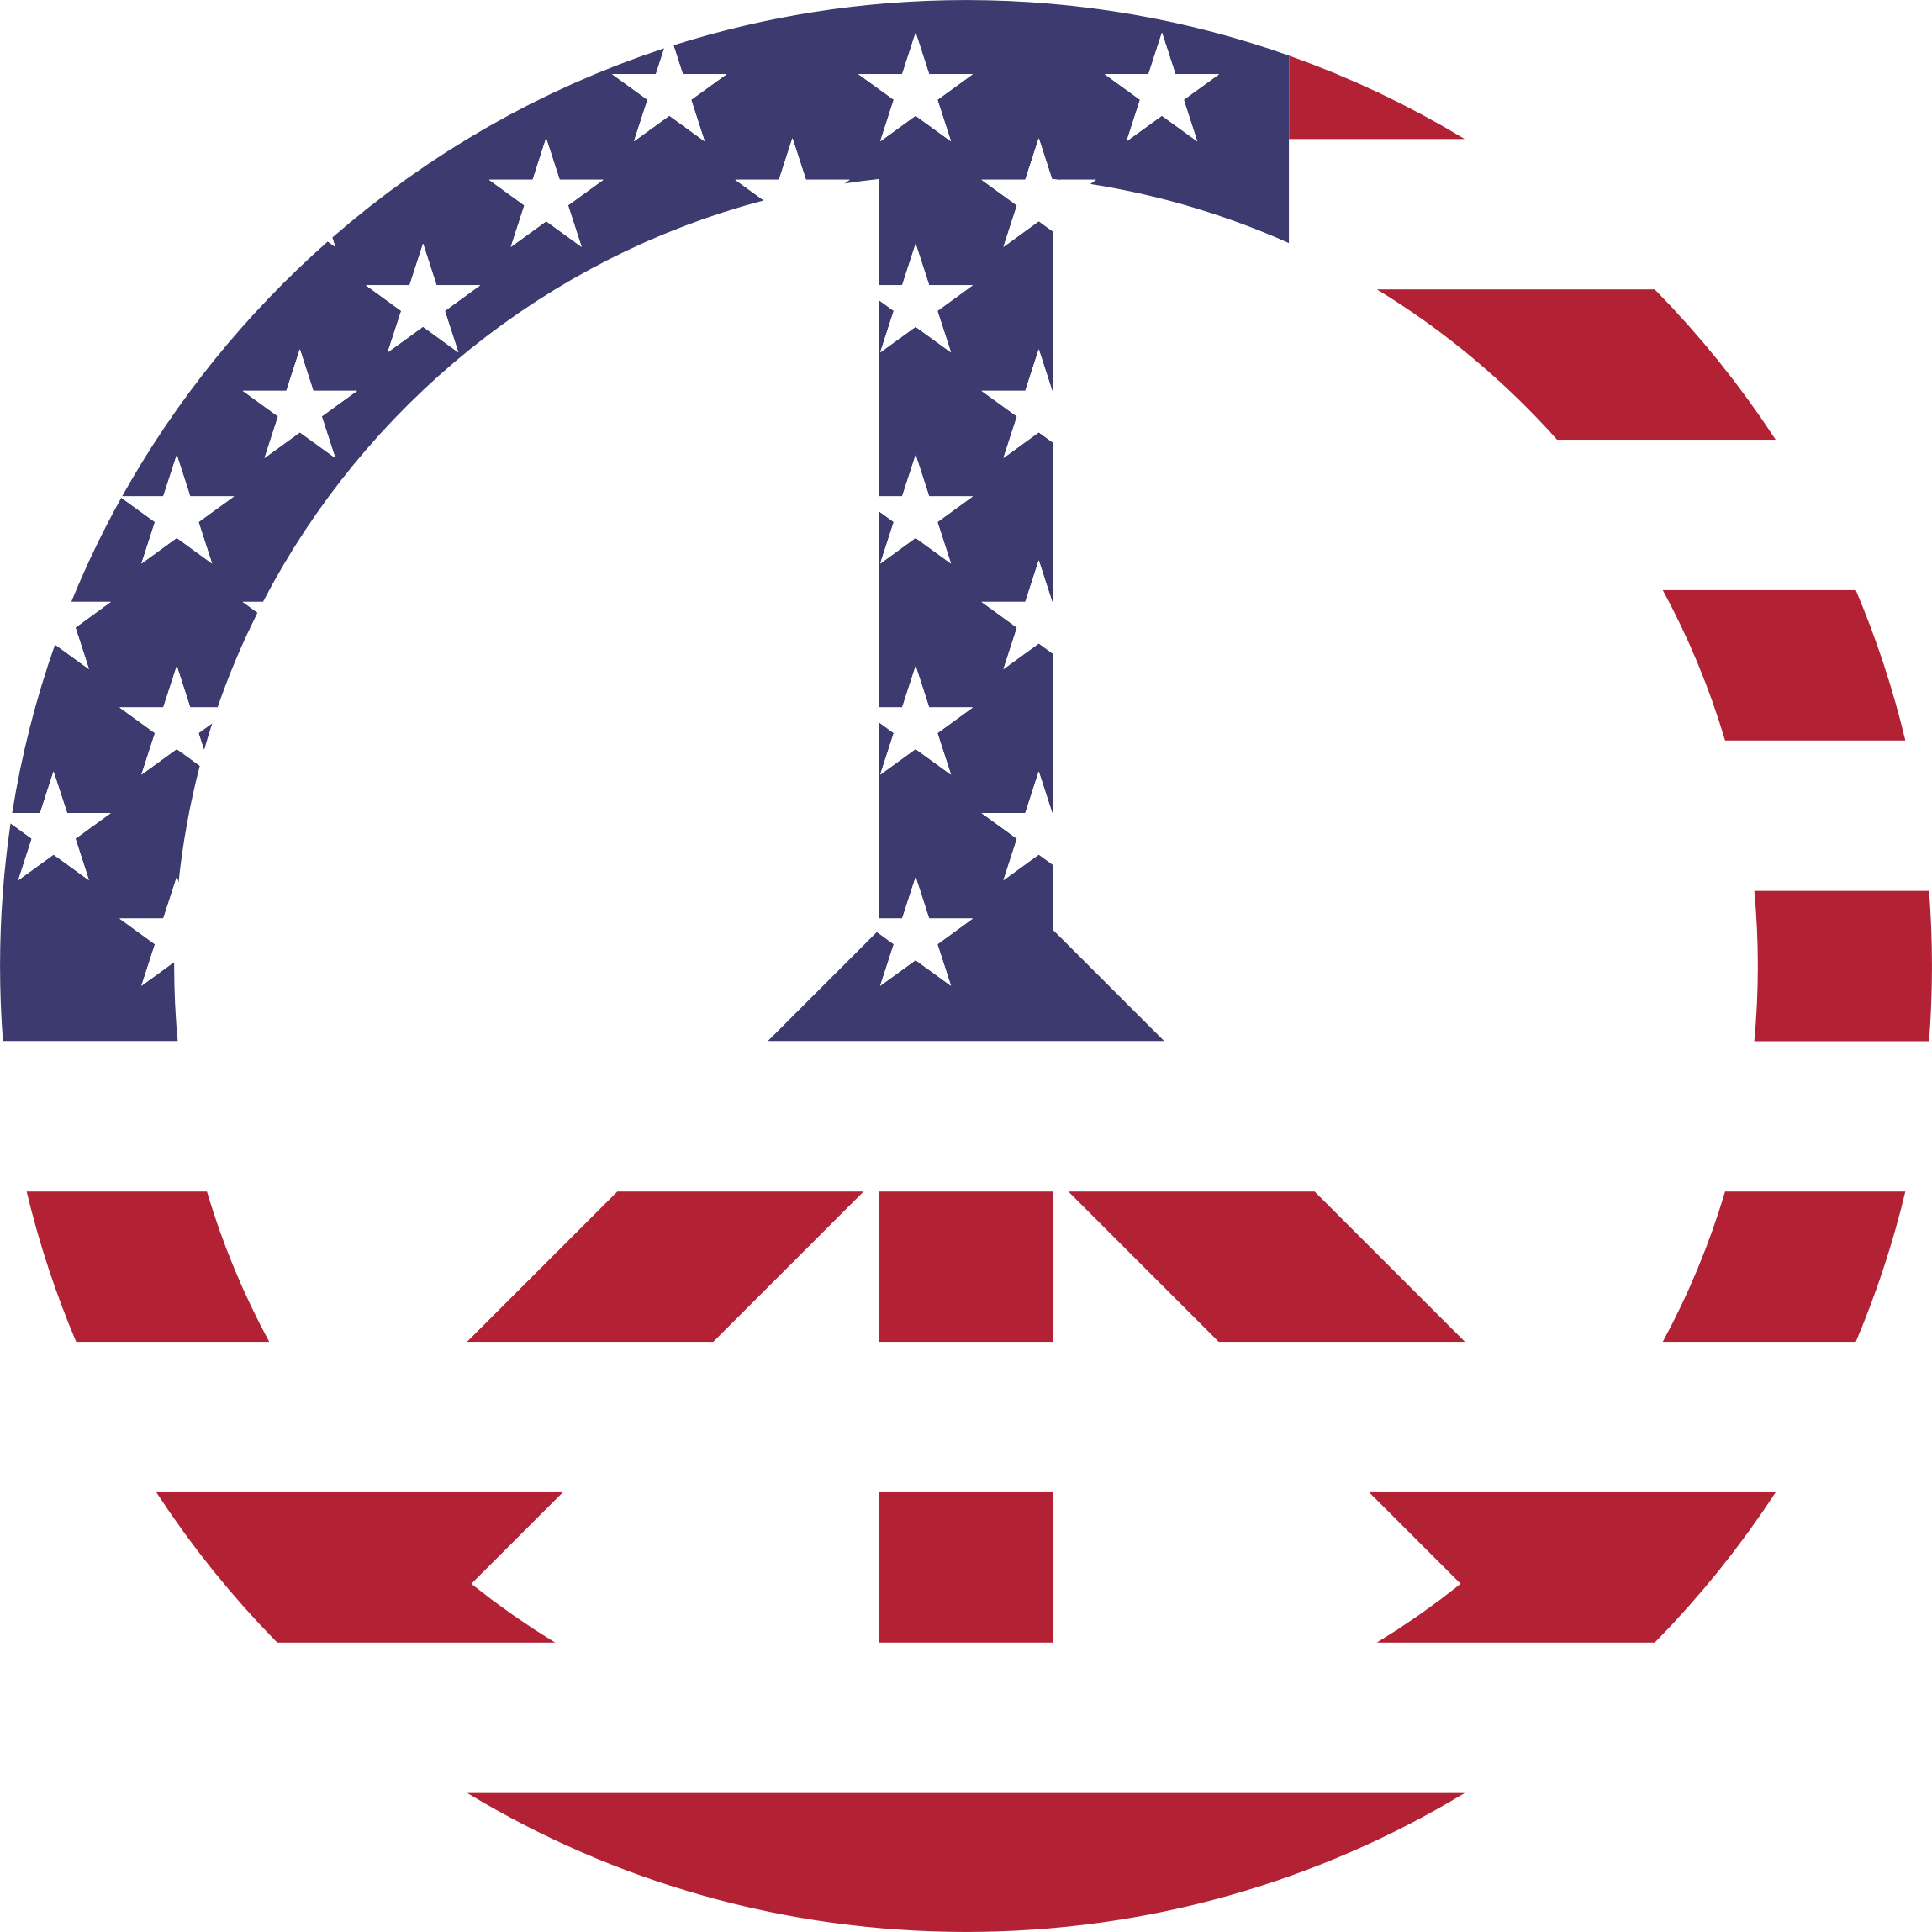 American Flag Peace Sign by GDJ